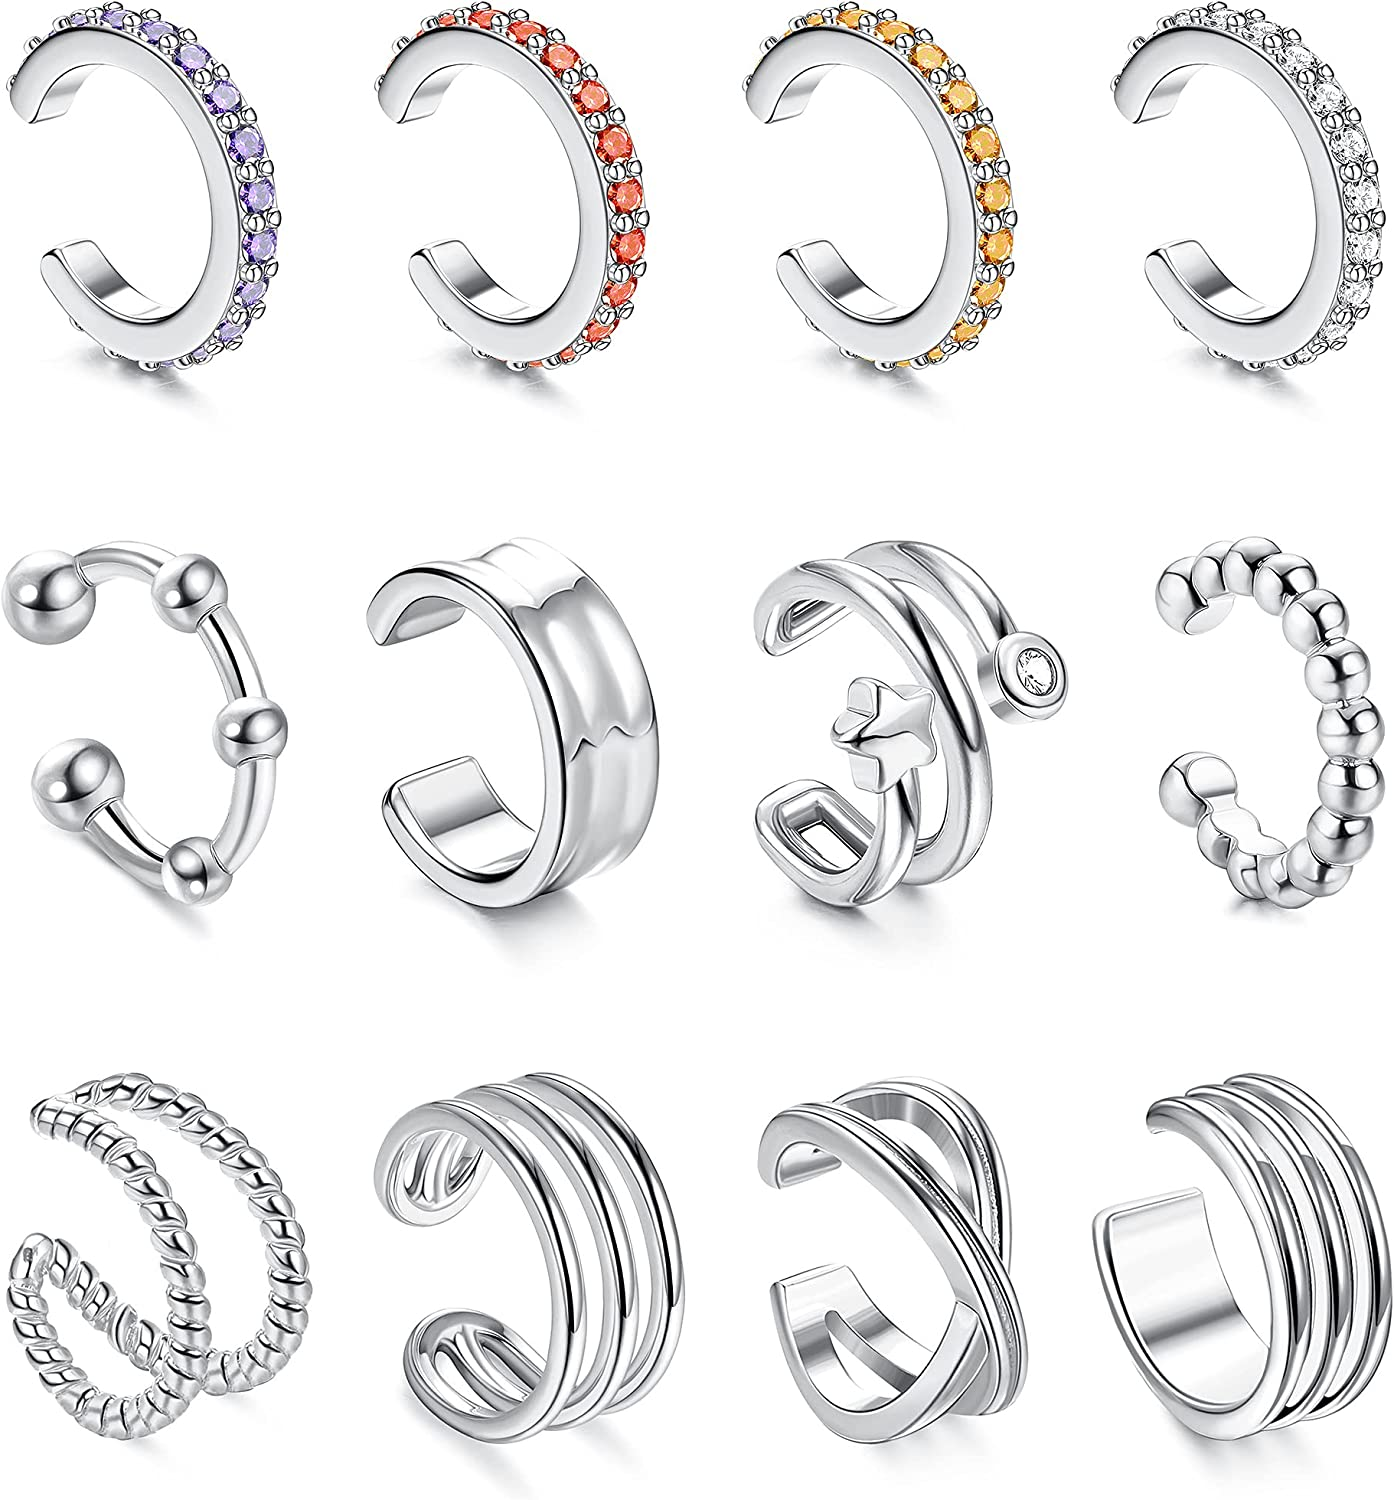 Jstyle 12Pcs Adjustable Sparkling Sale item Cash special price Ear Cuffs Non-Pier Dainty Gold